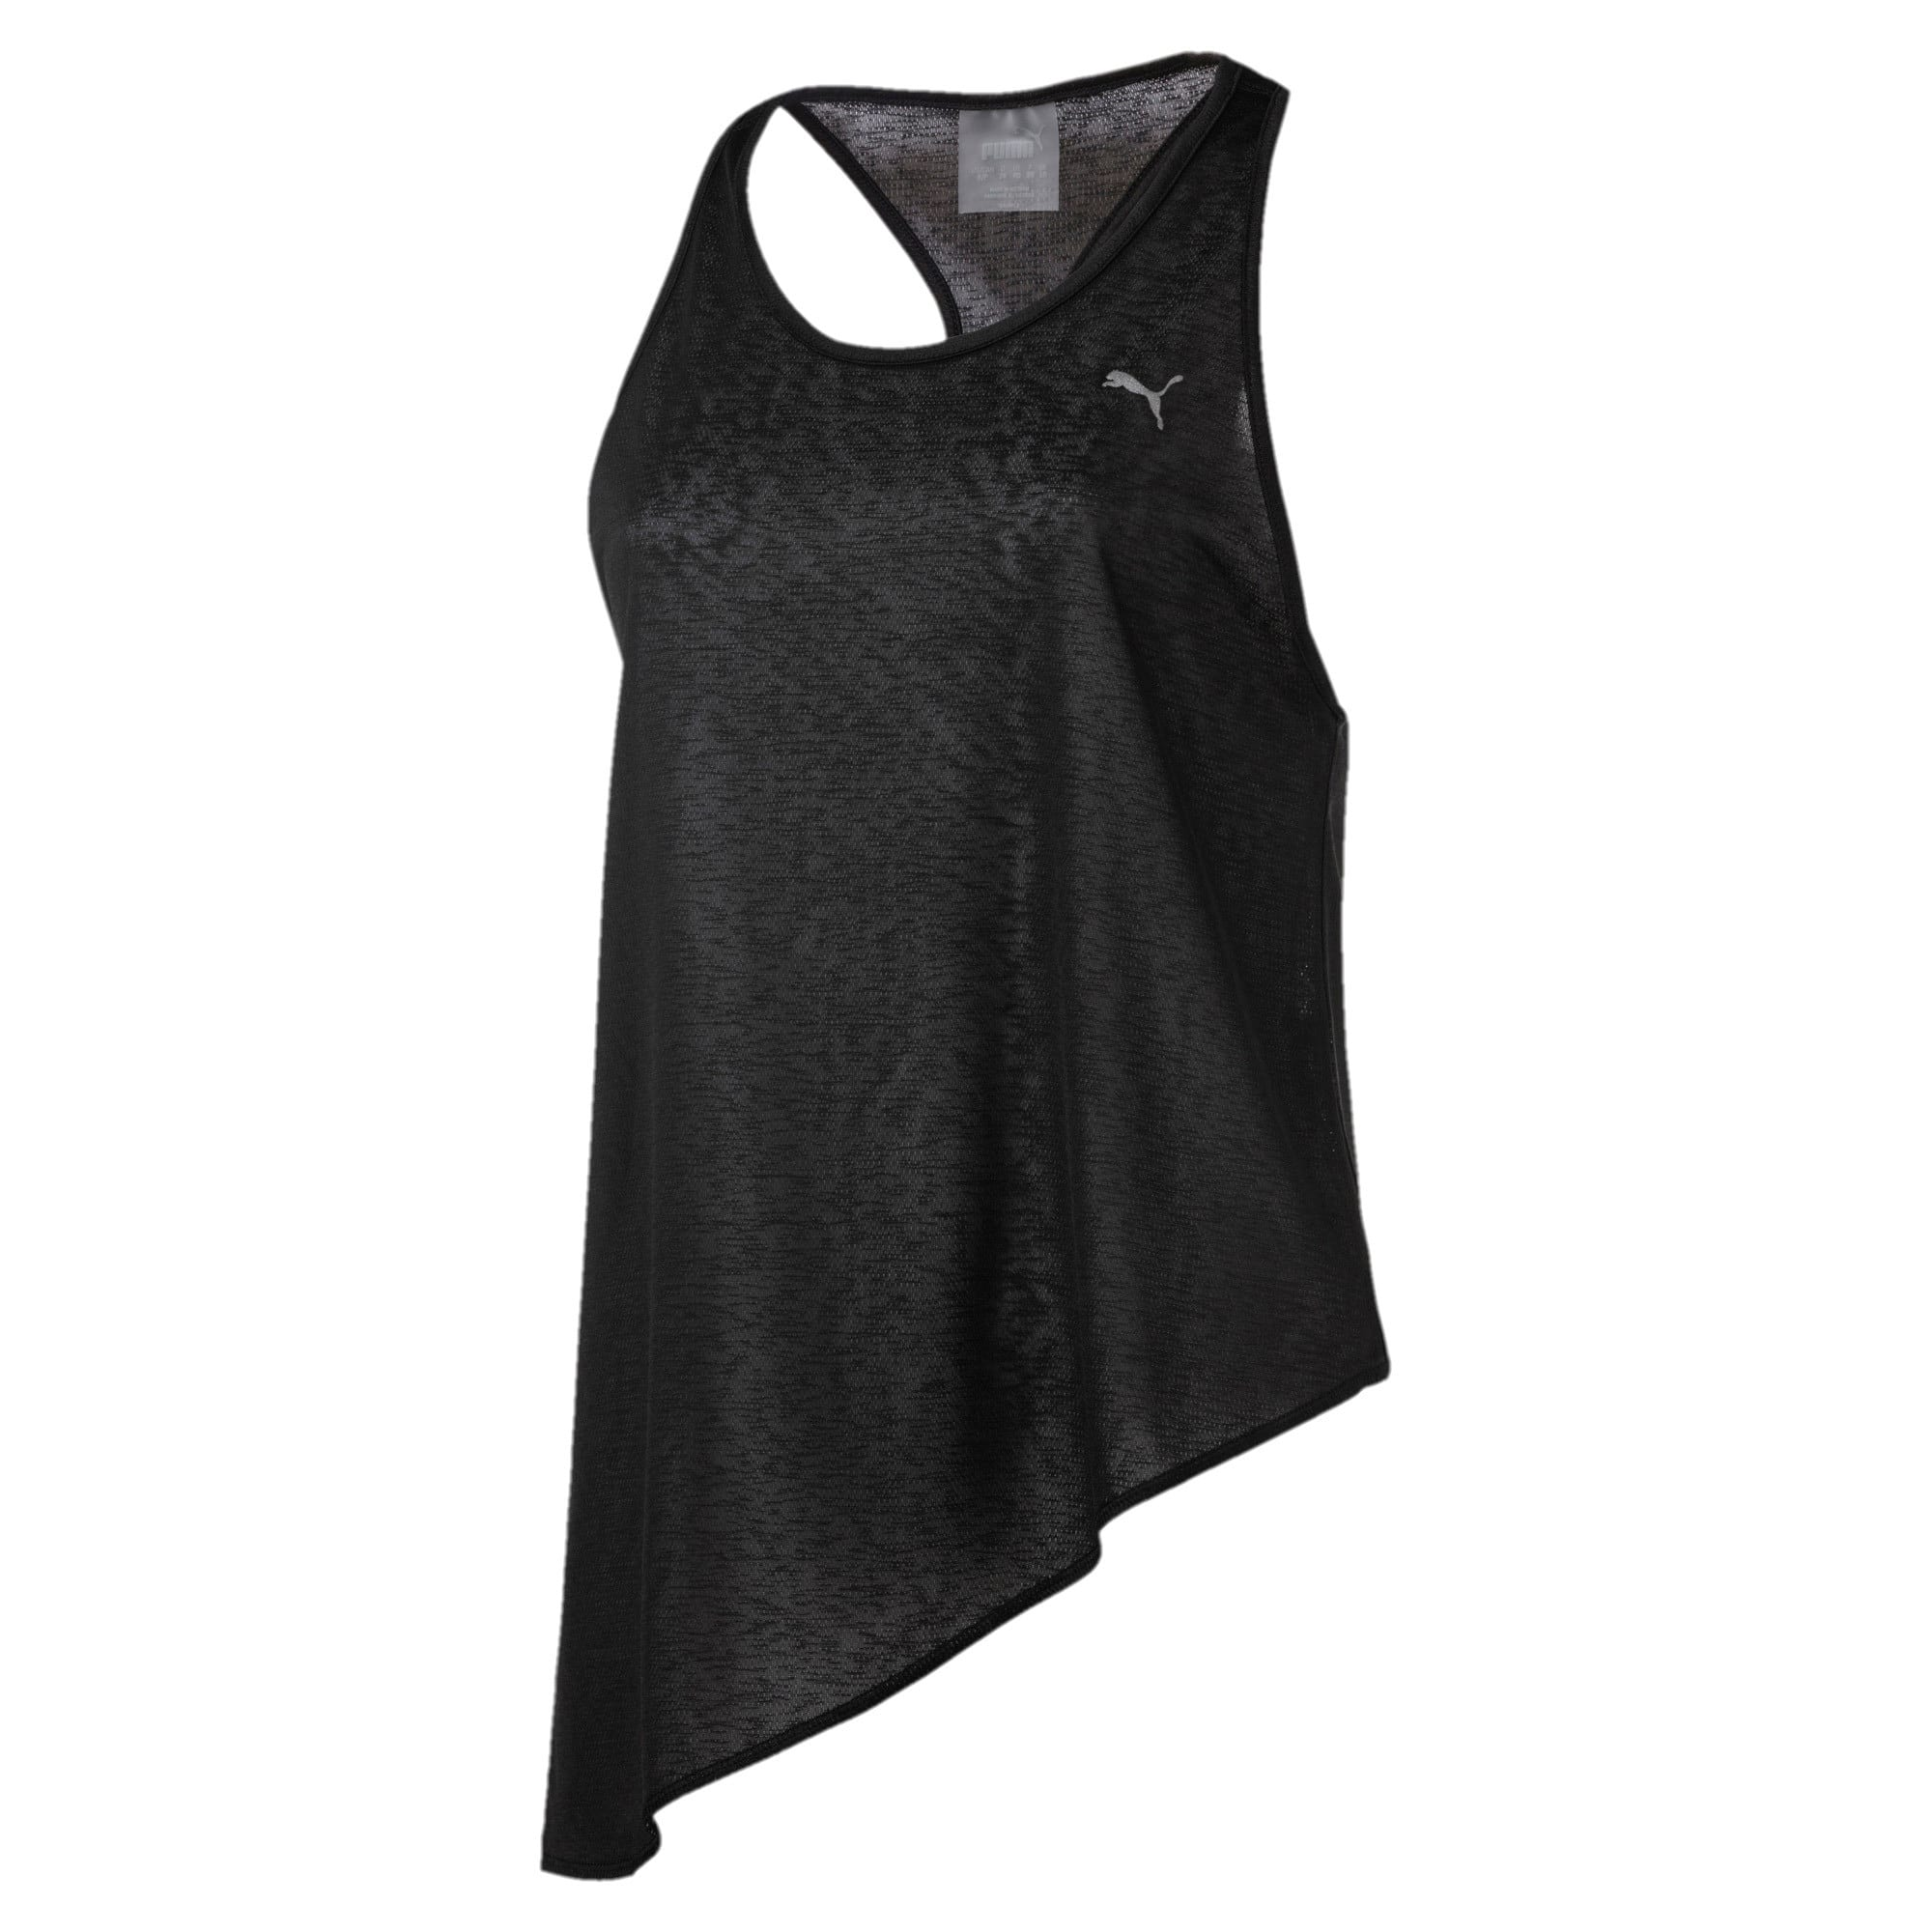 Thumbnail 1 of Training Women's A.C.E. Mono Tank Top, Puma Black, medium